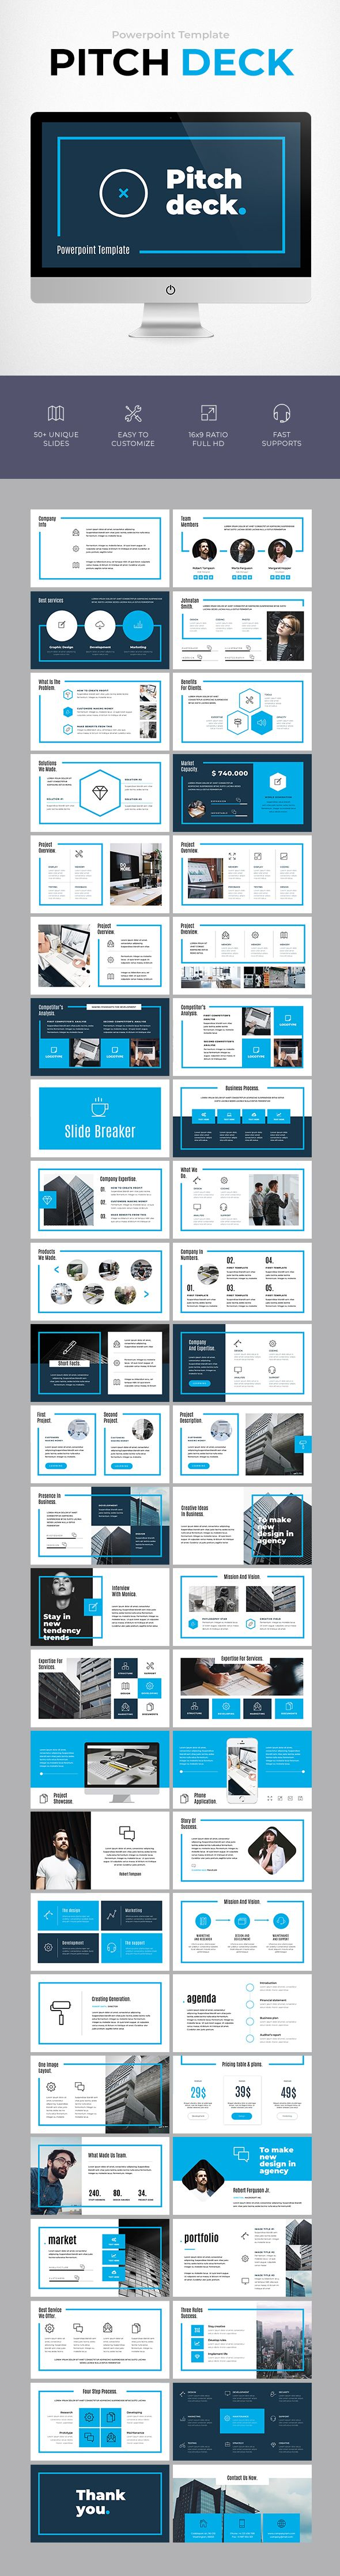 Pitch deck template pitch business powerpoint templates and decking pitch deck powerpoint template 50 unique slides cheaphphosting Image collections